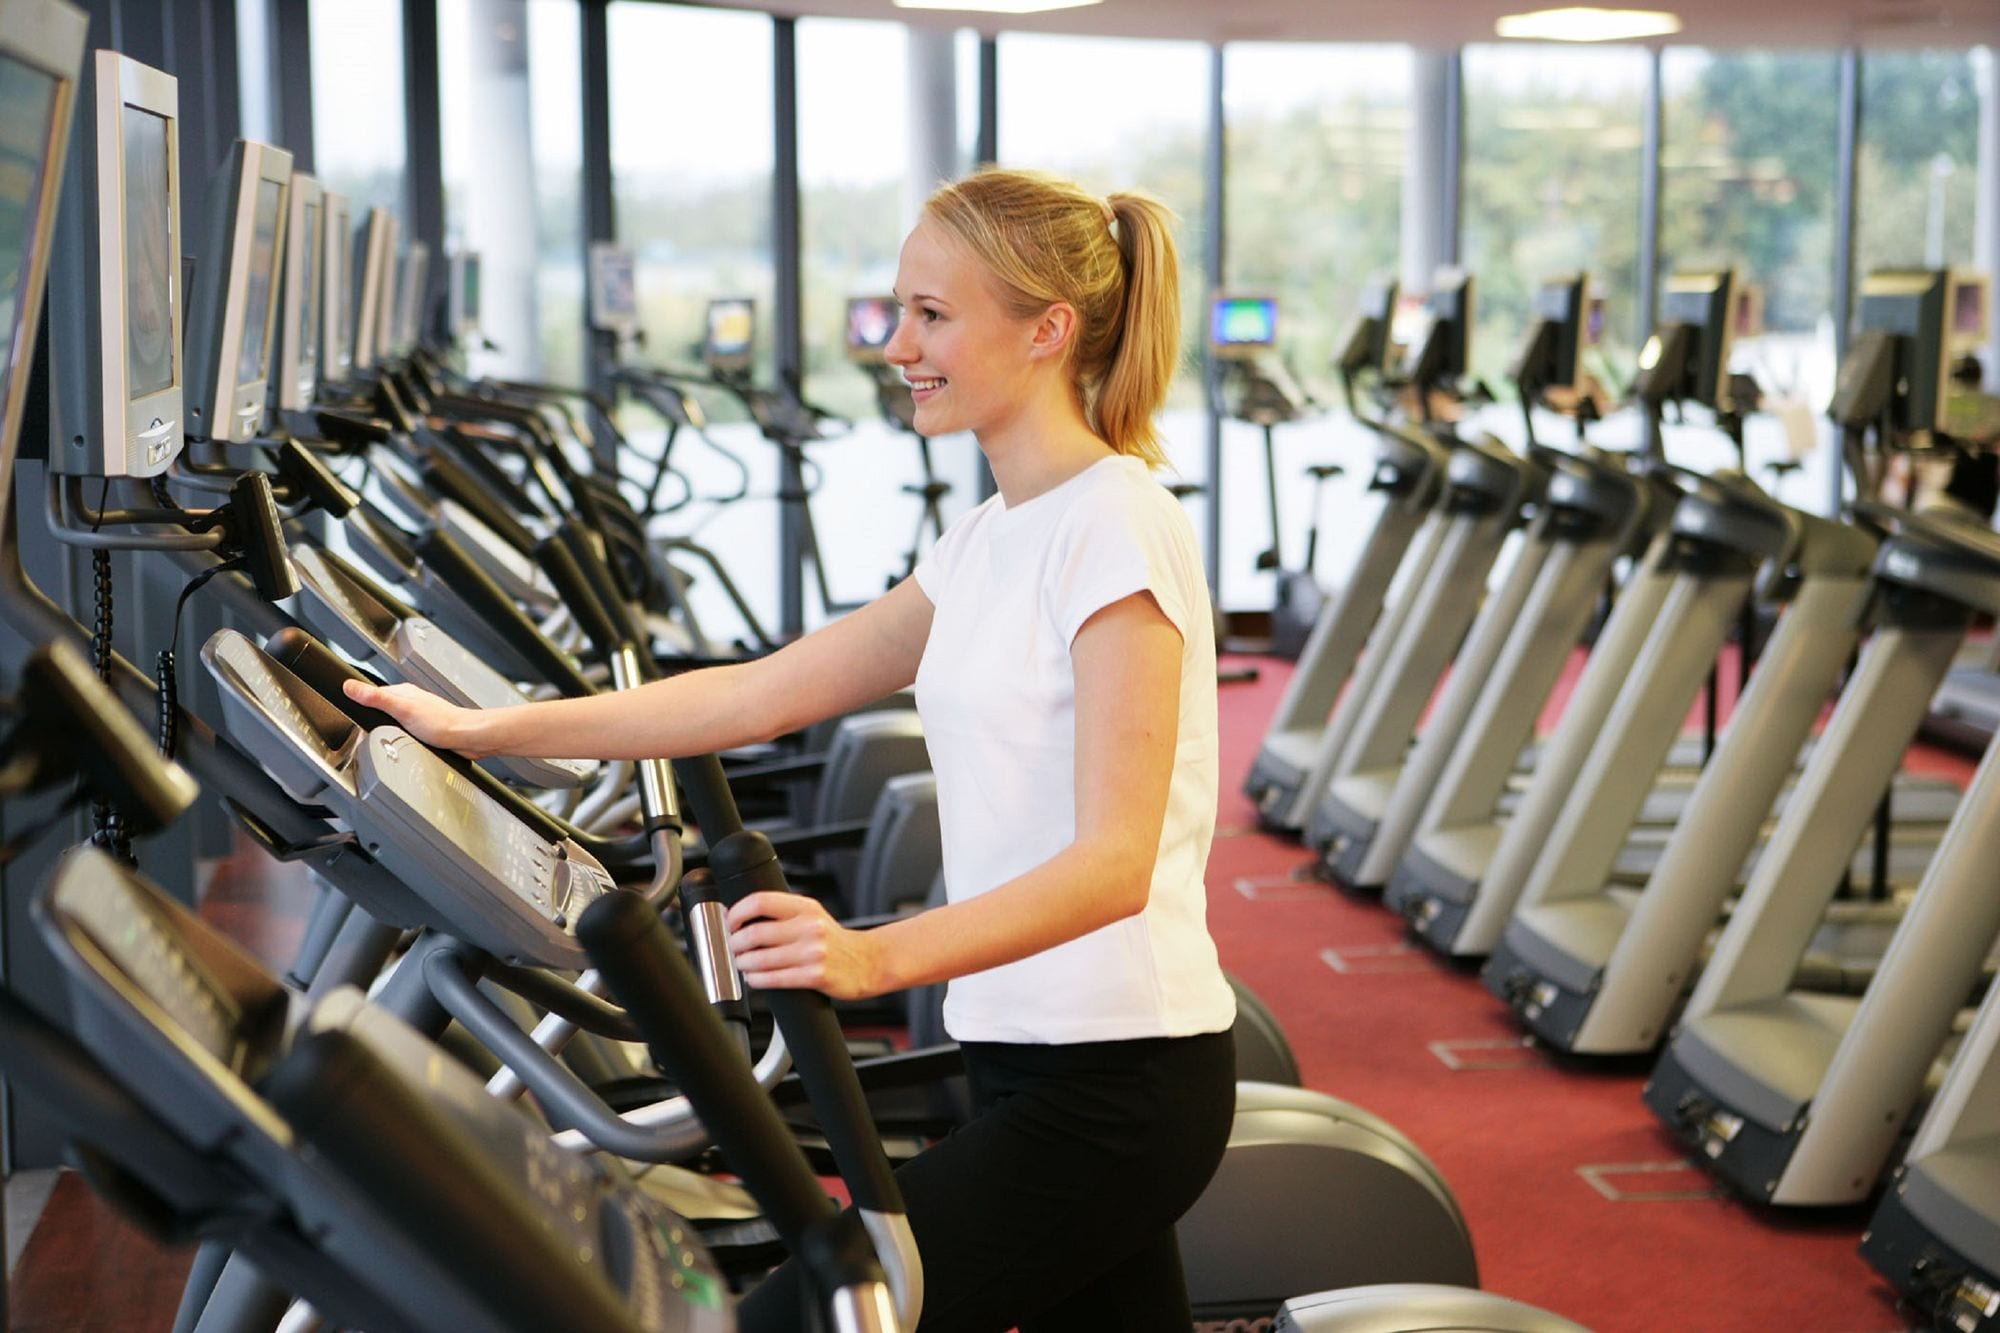 gym_member_working_out_in_Club_Vitae_at_Clayton_Hotel_Liffey_Valley